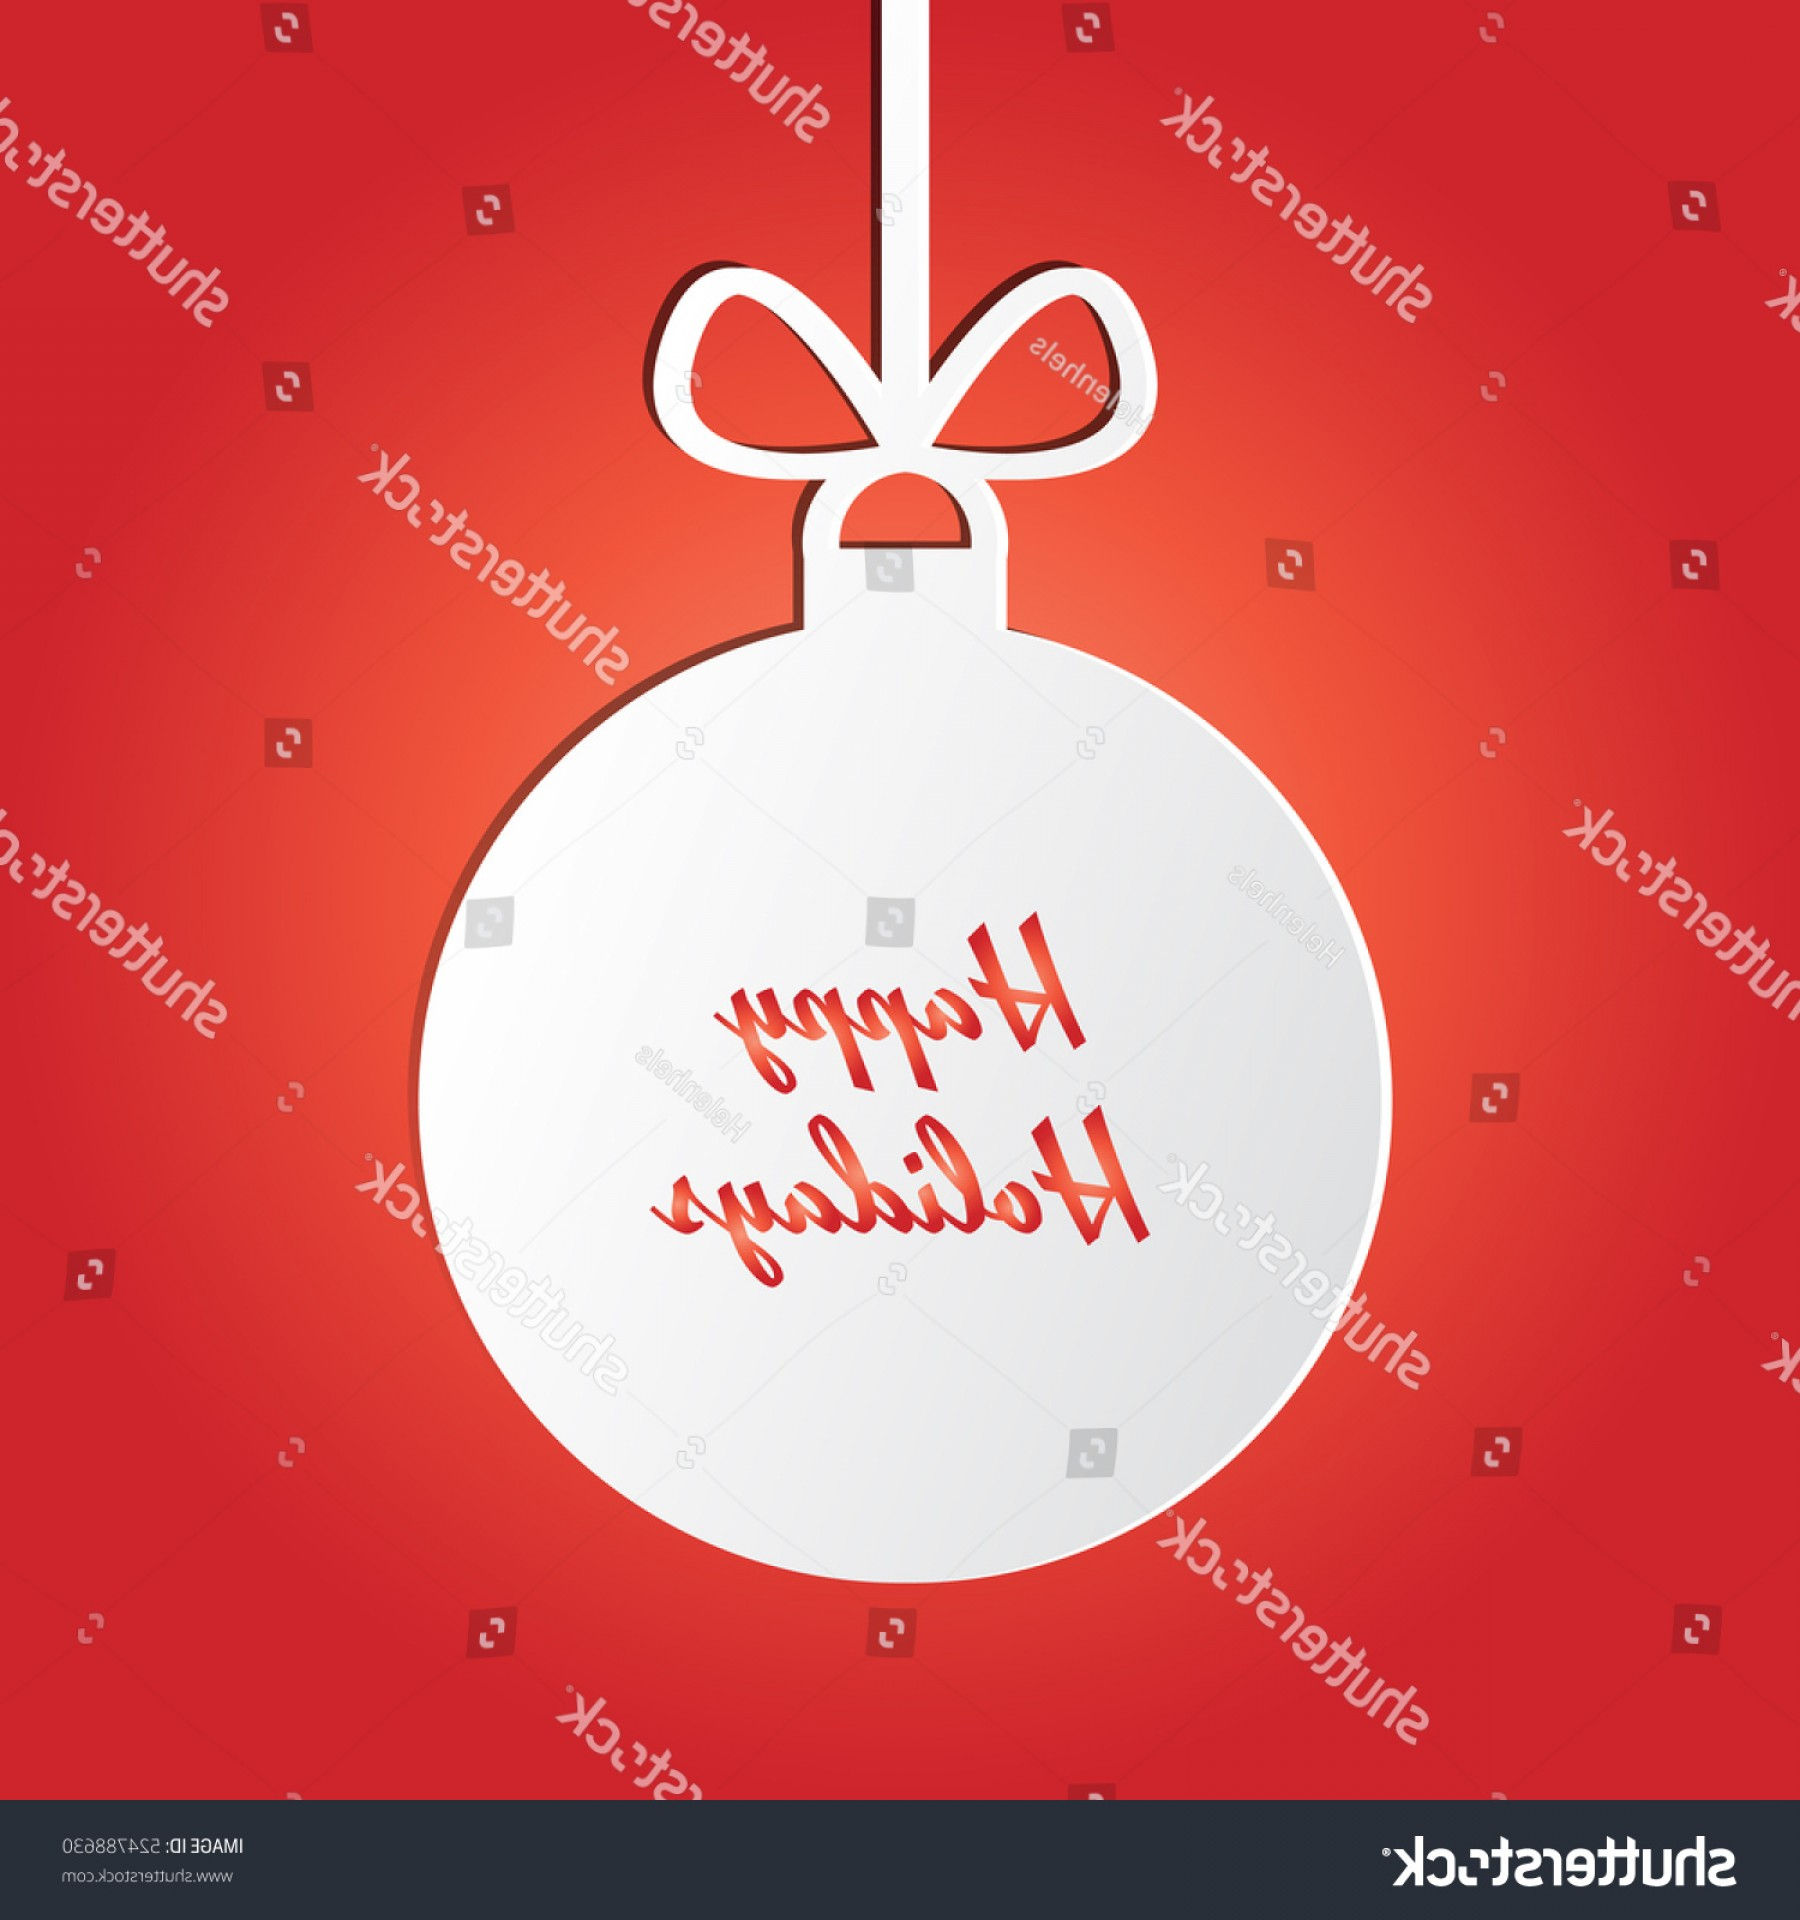 Vector Silhouette Happy Holidays: Silhouette Christmas Ball Happy Holidays